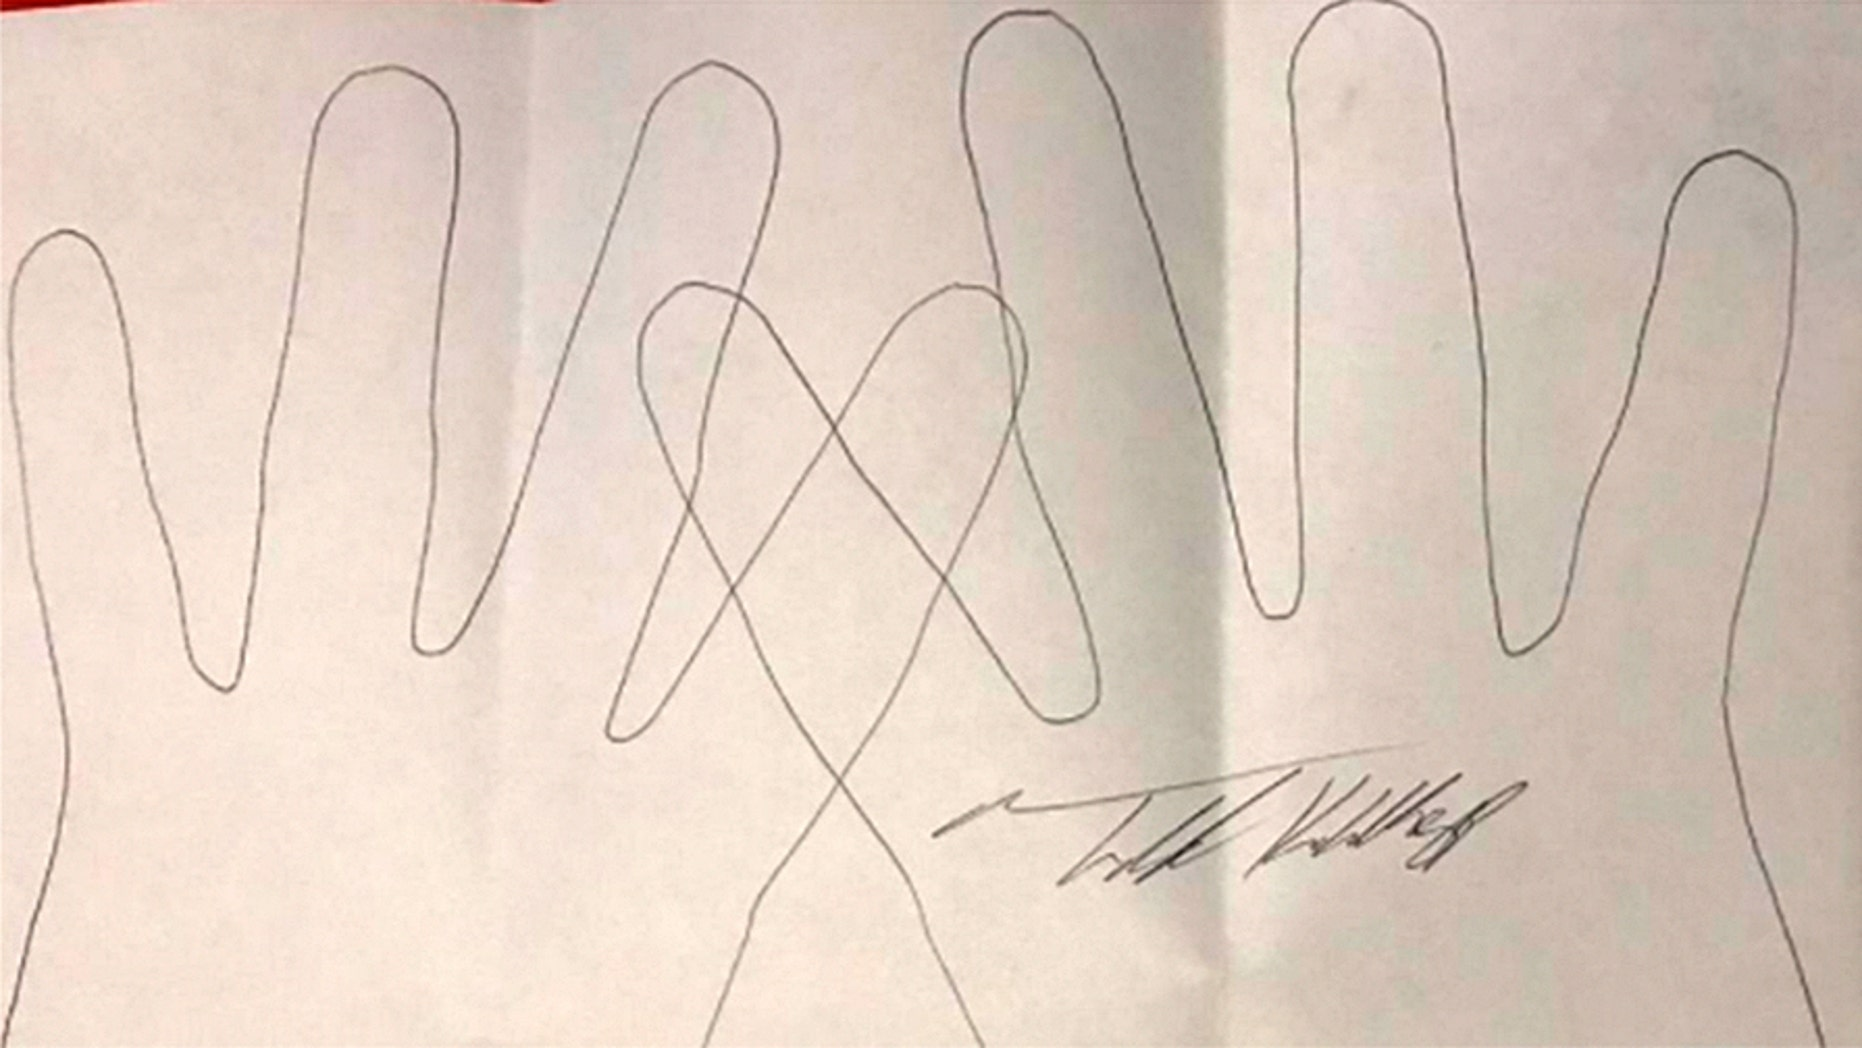 A signed pencil tracing of convicted serial killer Todd Kohlhepp was being advertised online.